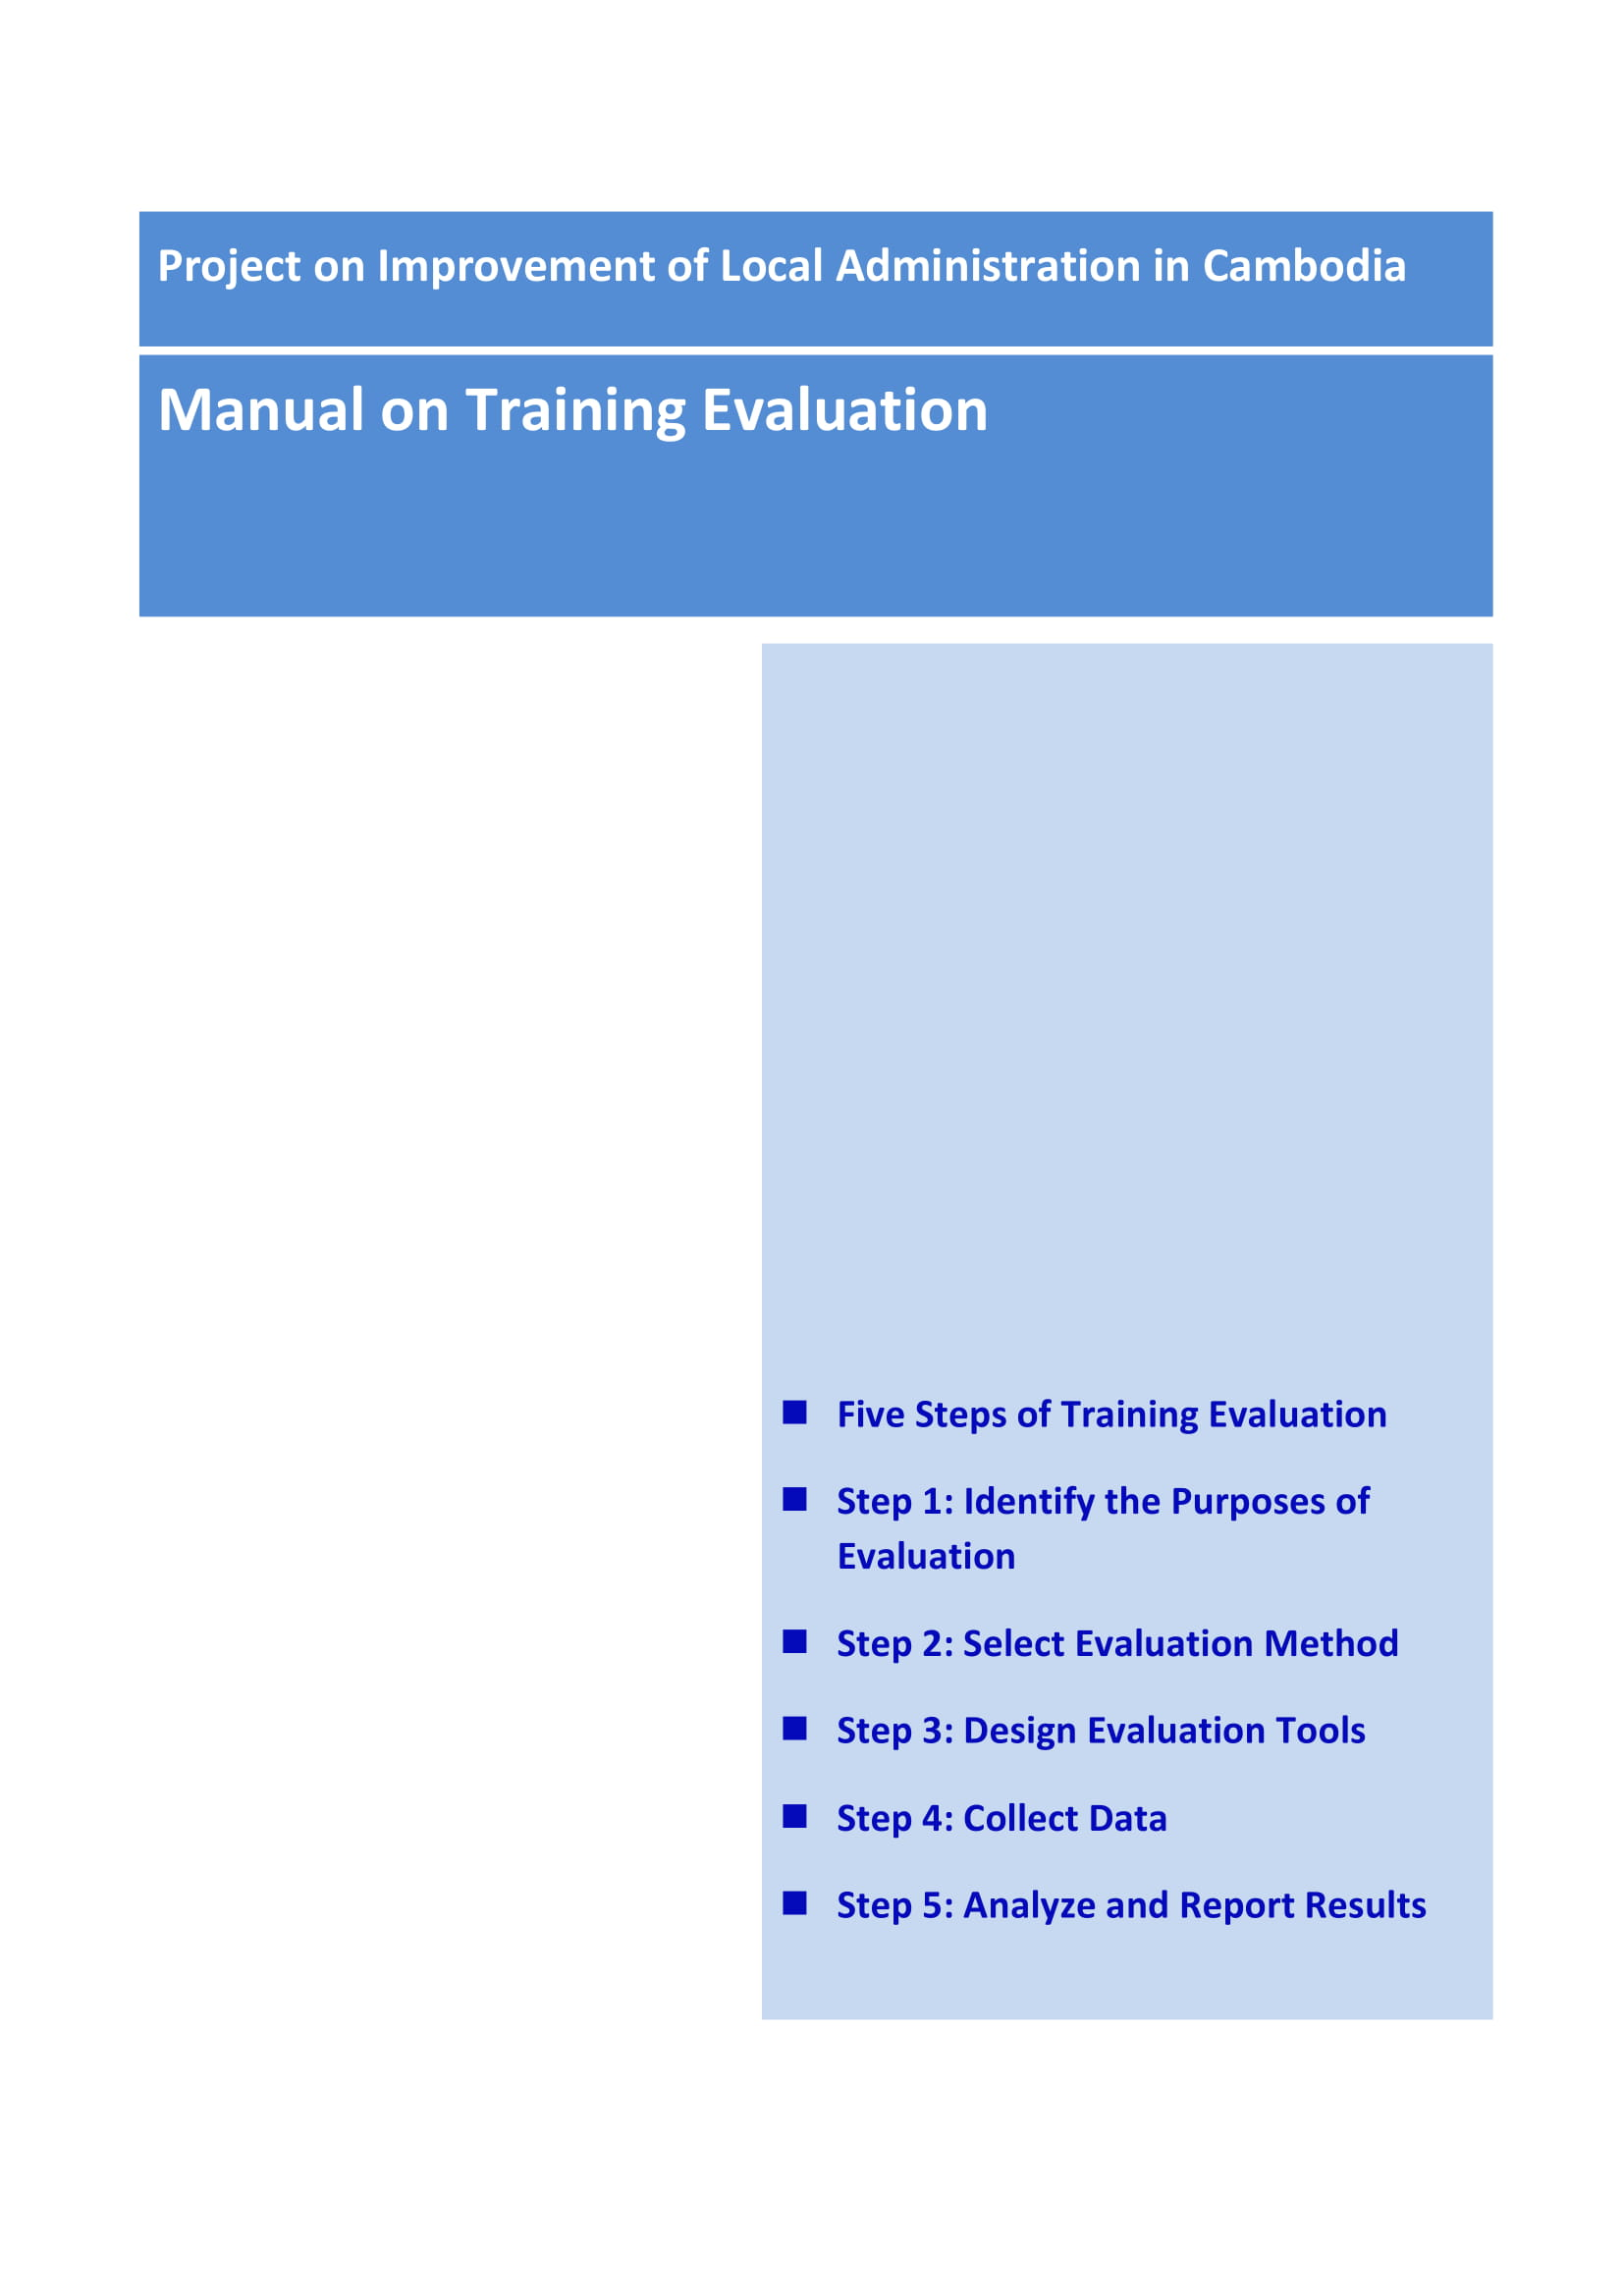 trainingevaluation manual 01